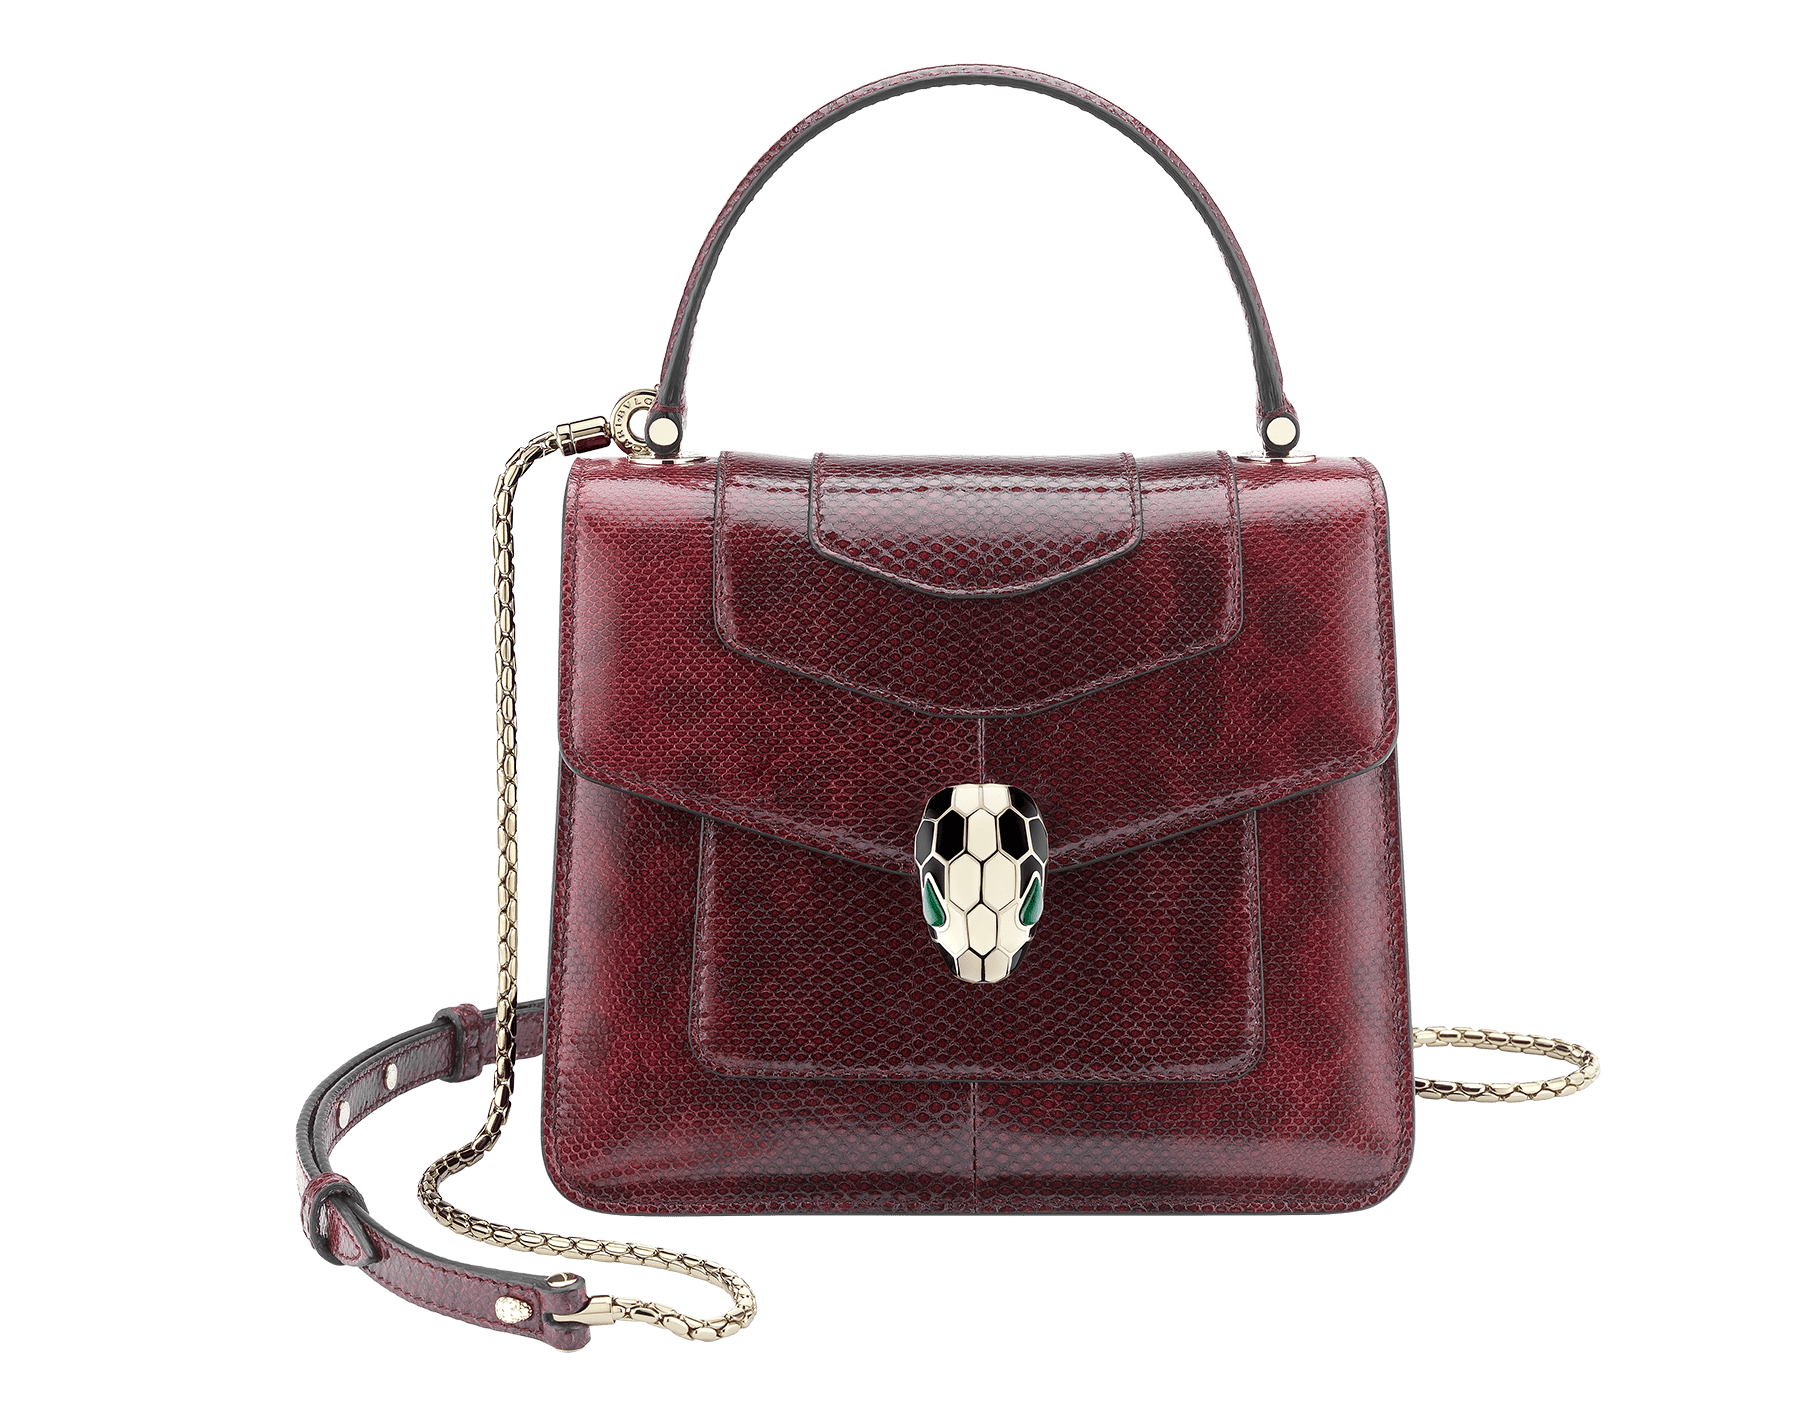 Flap cover bag Serpenti Forever in roman garnet shiny karung skin. Brass light gold plated hardware and tempting snake head closure in shiny black and white enamel, with eyes in green malachite. 286198 image 1